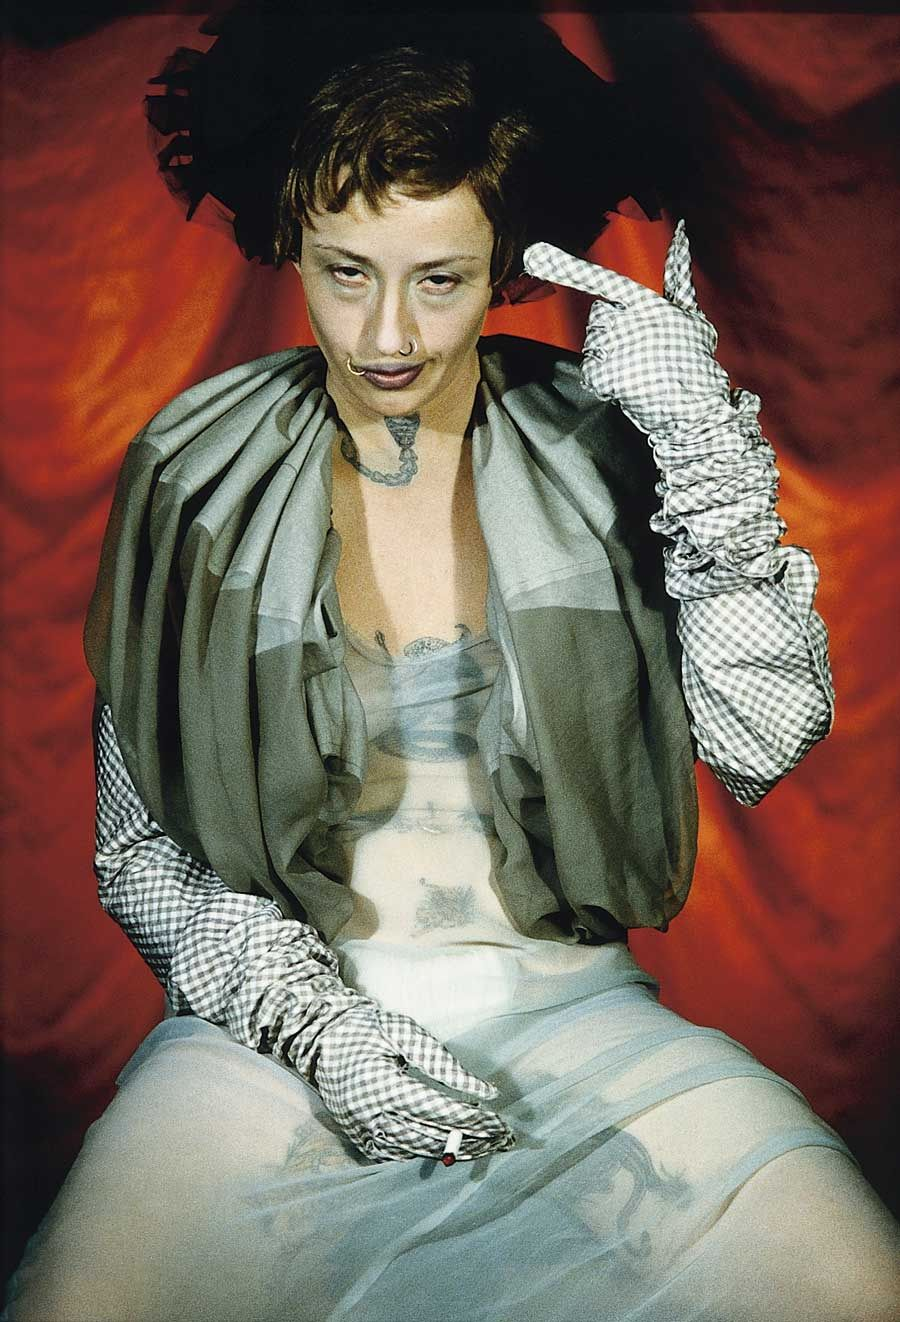 """a report on the life and work of cindy sherman an american artist Catering to this breed, christie's is selling 21 of cindy sherman's """"untitled film stills"""" in a single lot during its nov 12 evening sale of postwar and contemporary art in new york."""